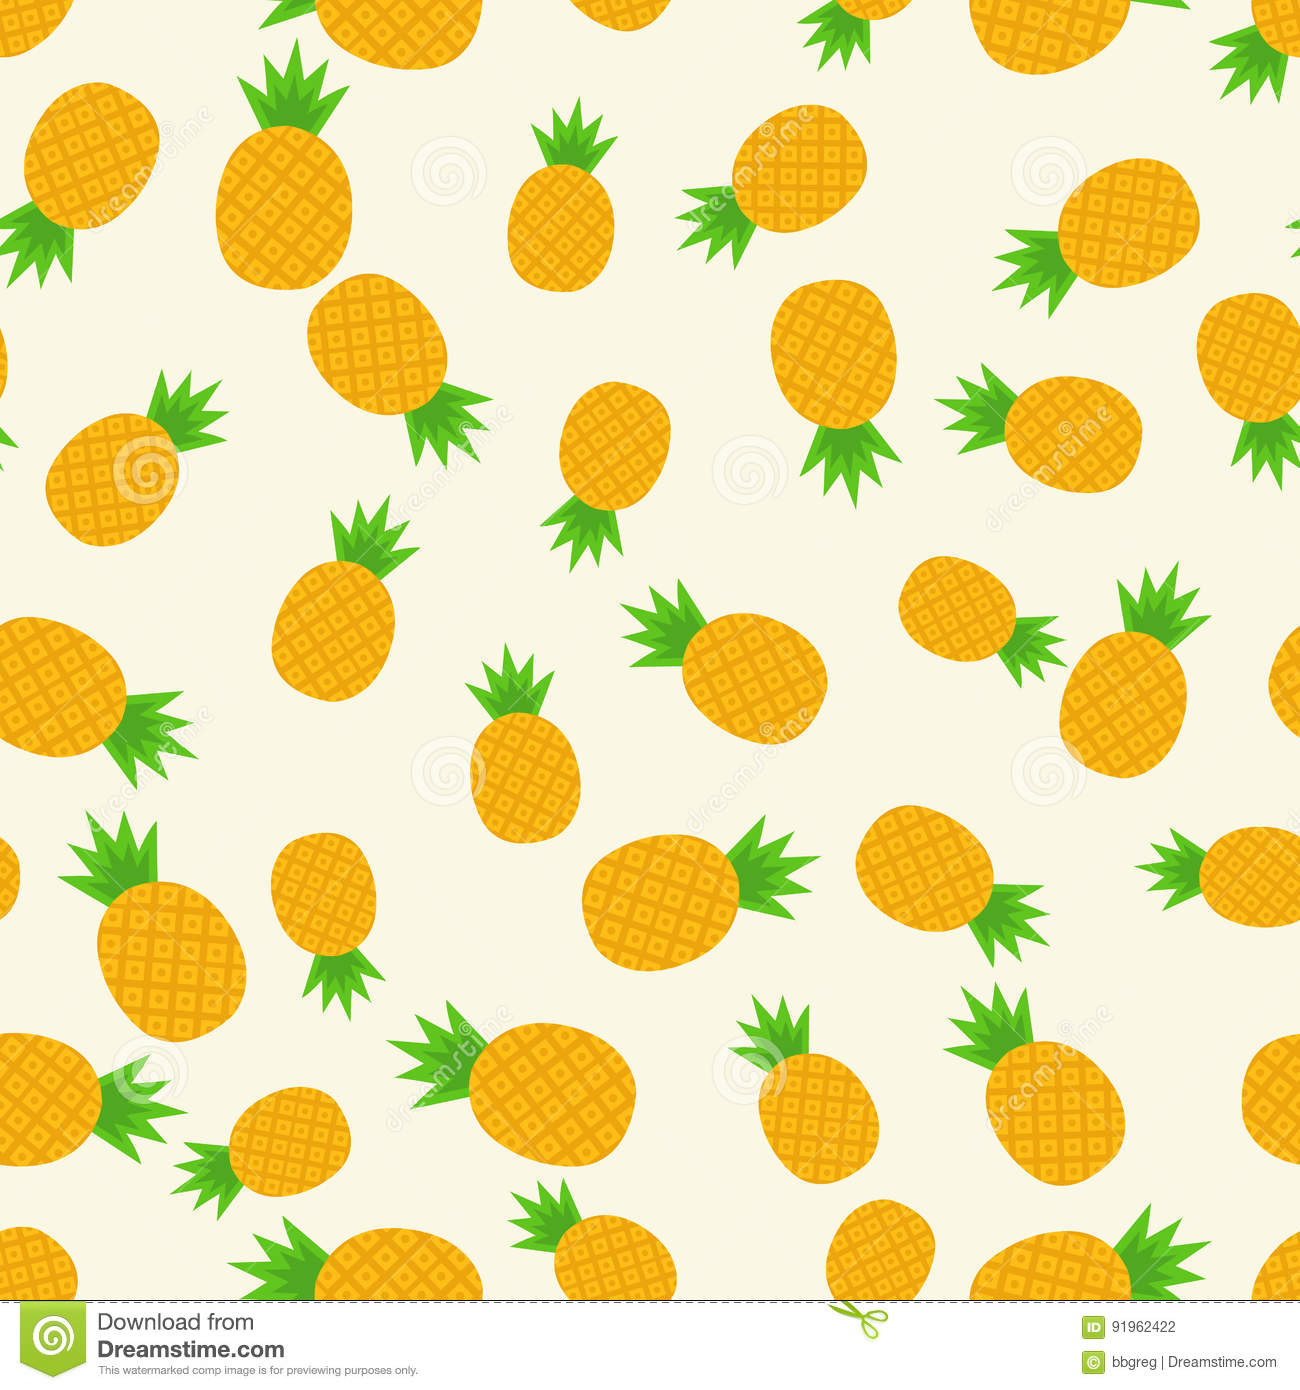 Tropical Trendy Seamless Pattern With Pineapples. Healthy